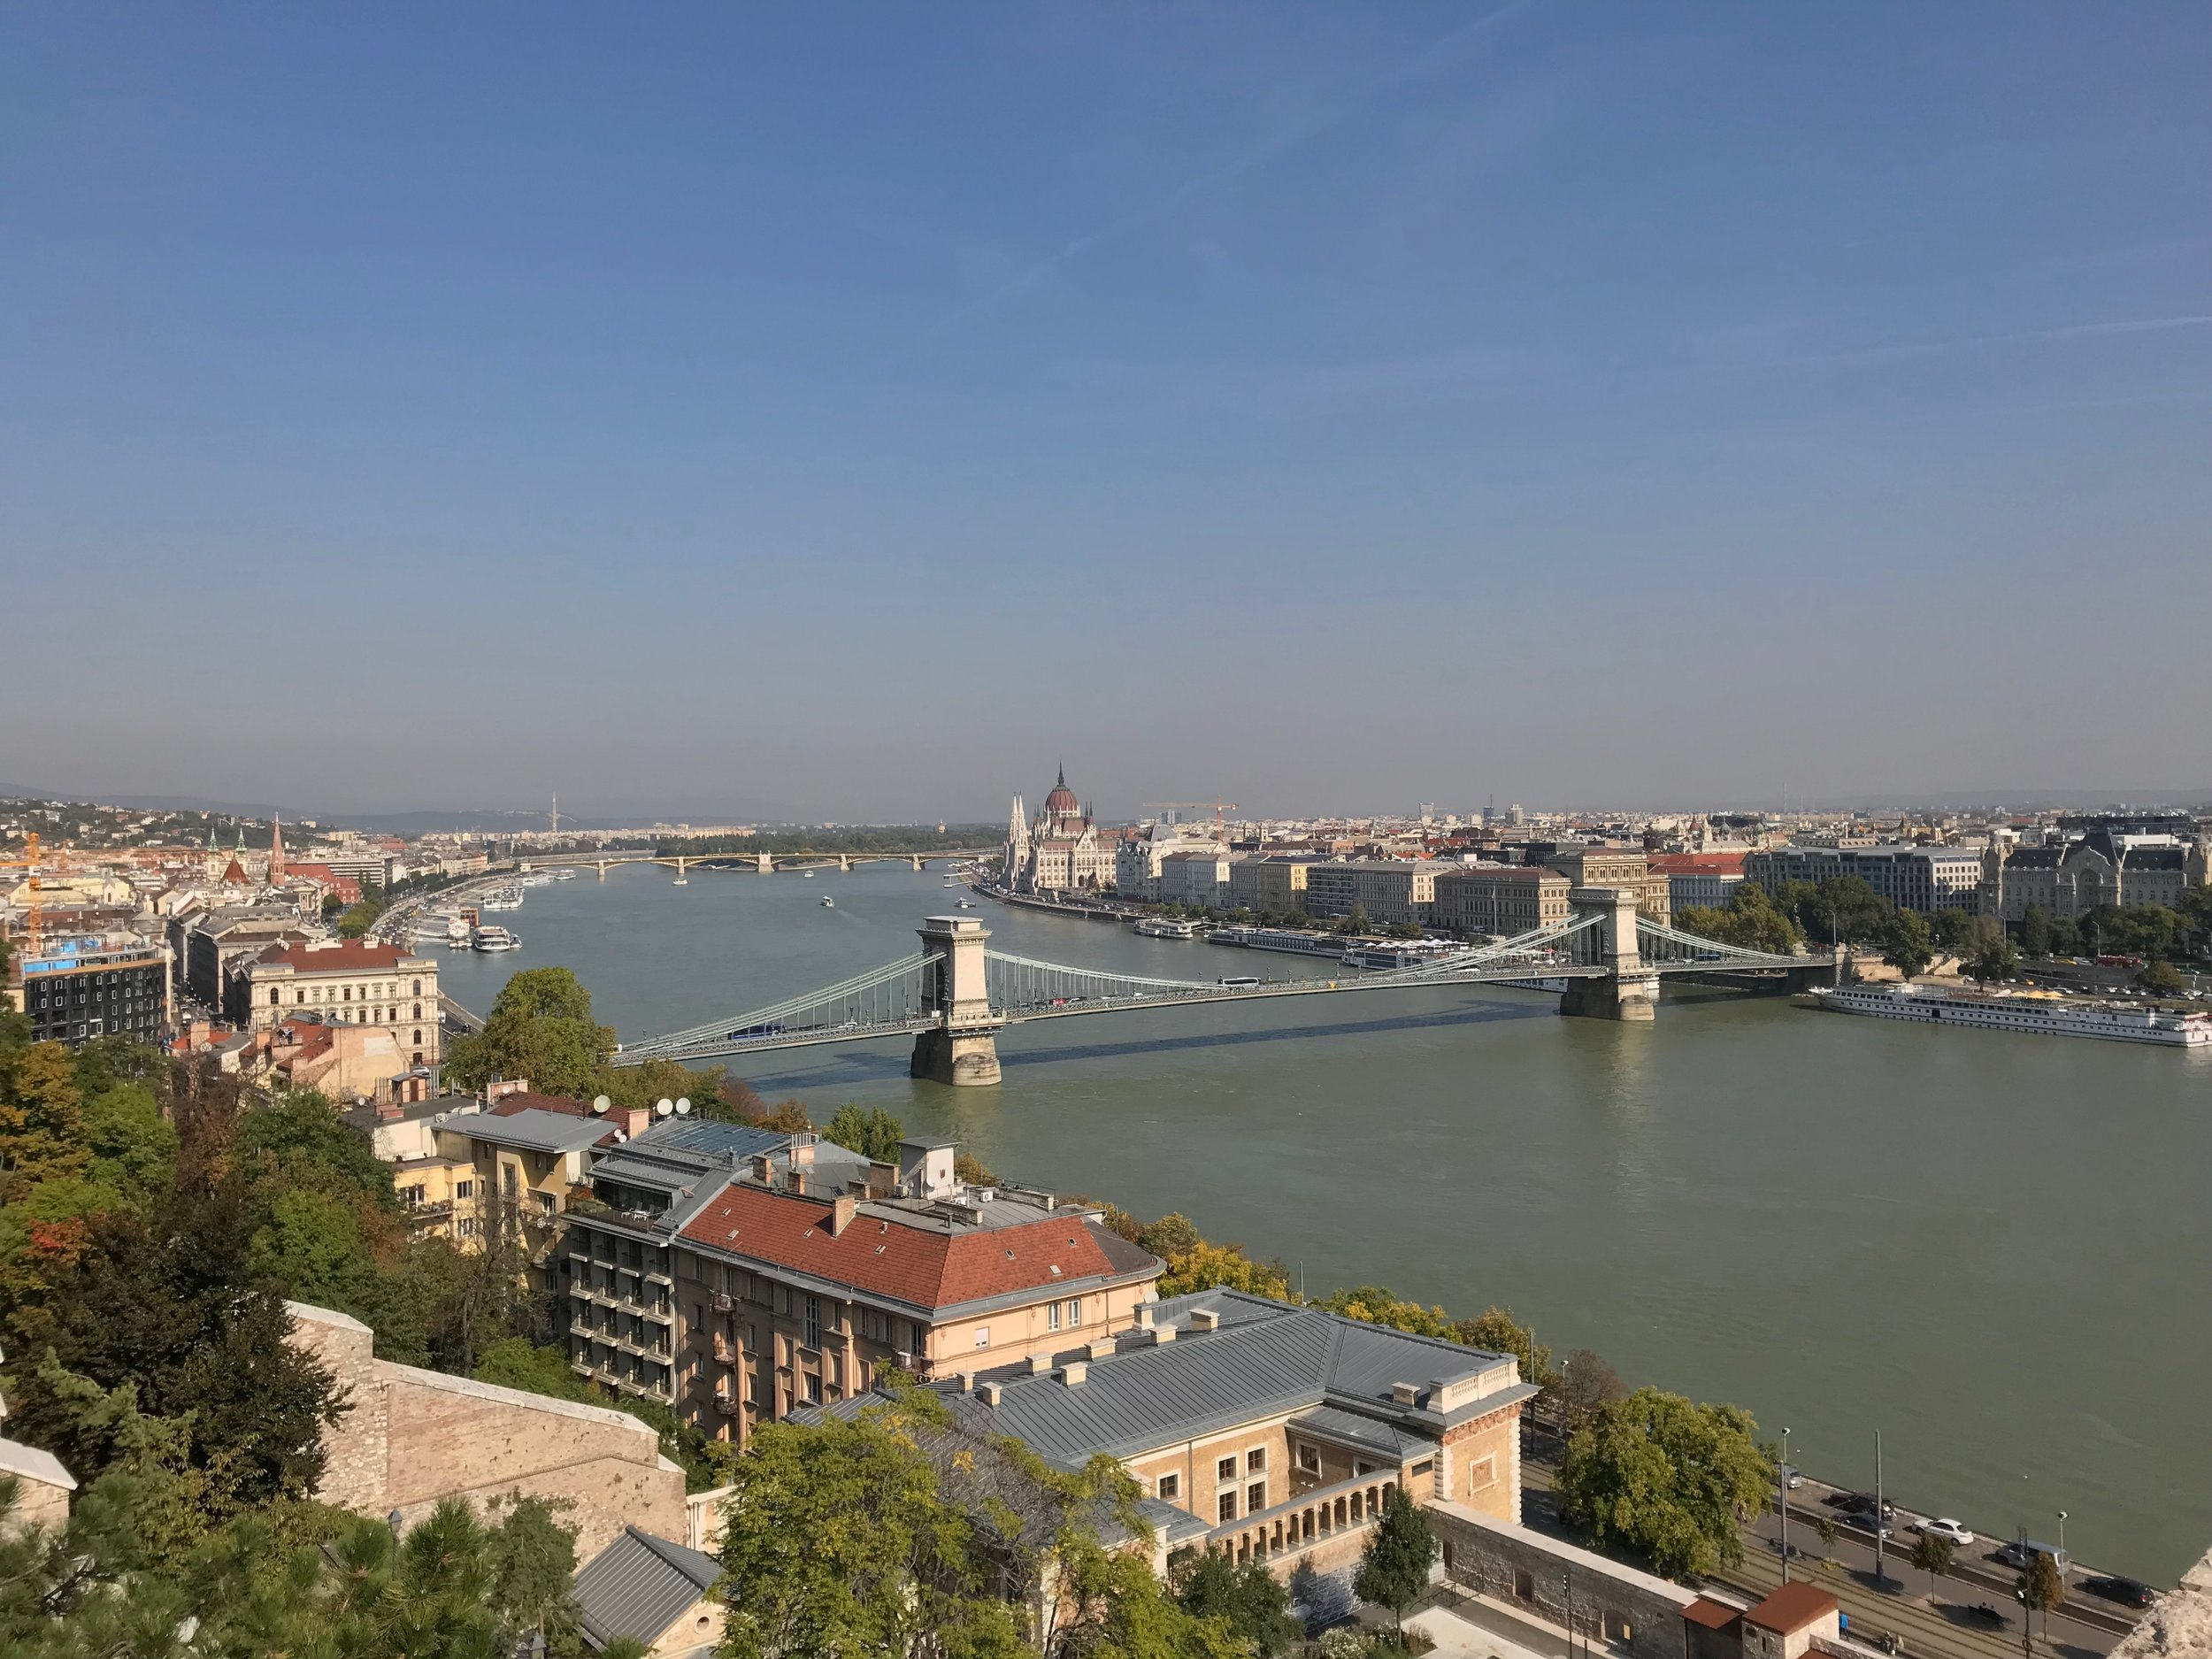 View of Danube river from Buda Castle